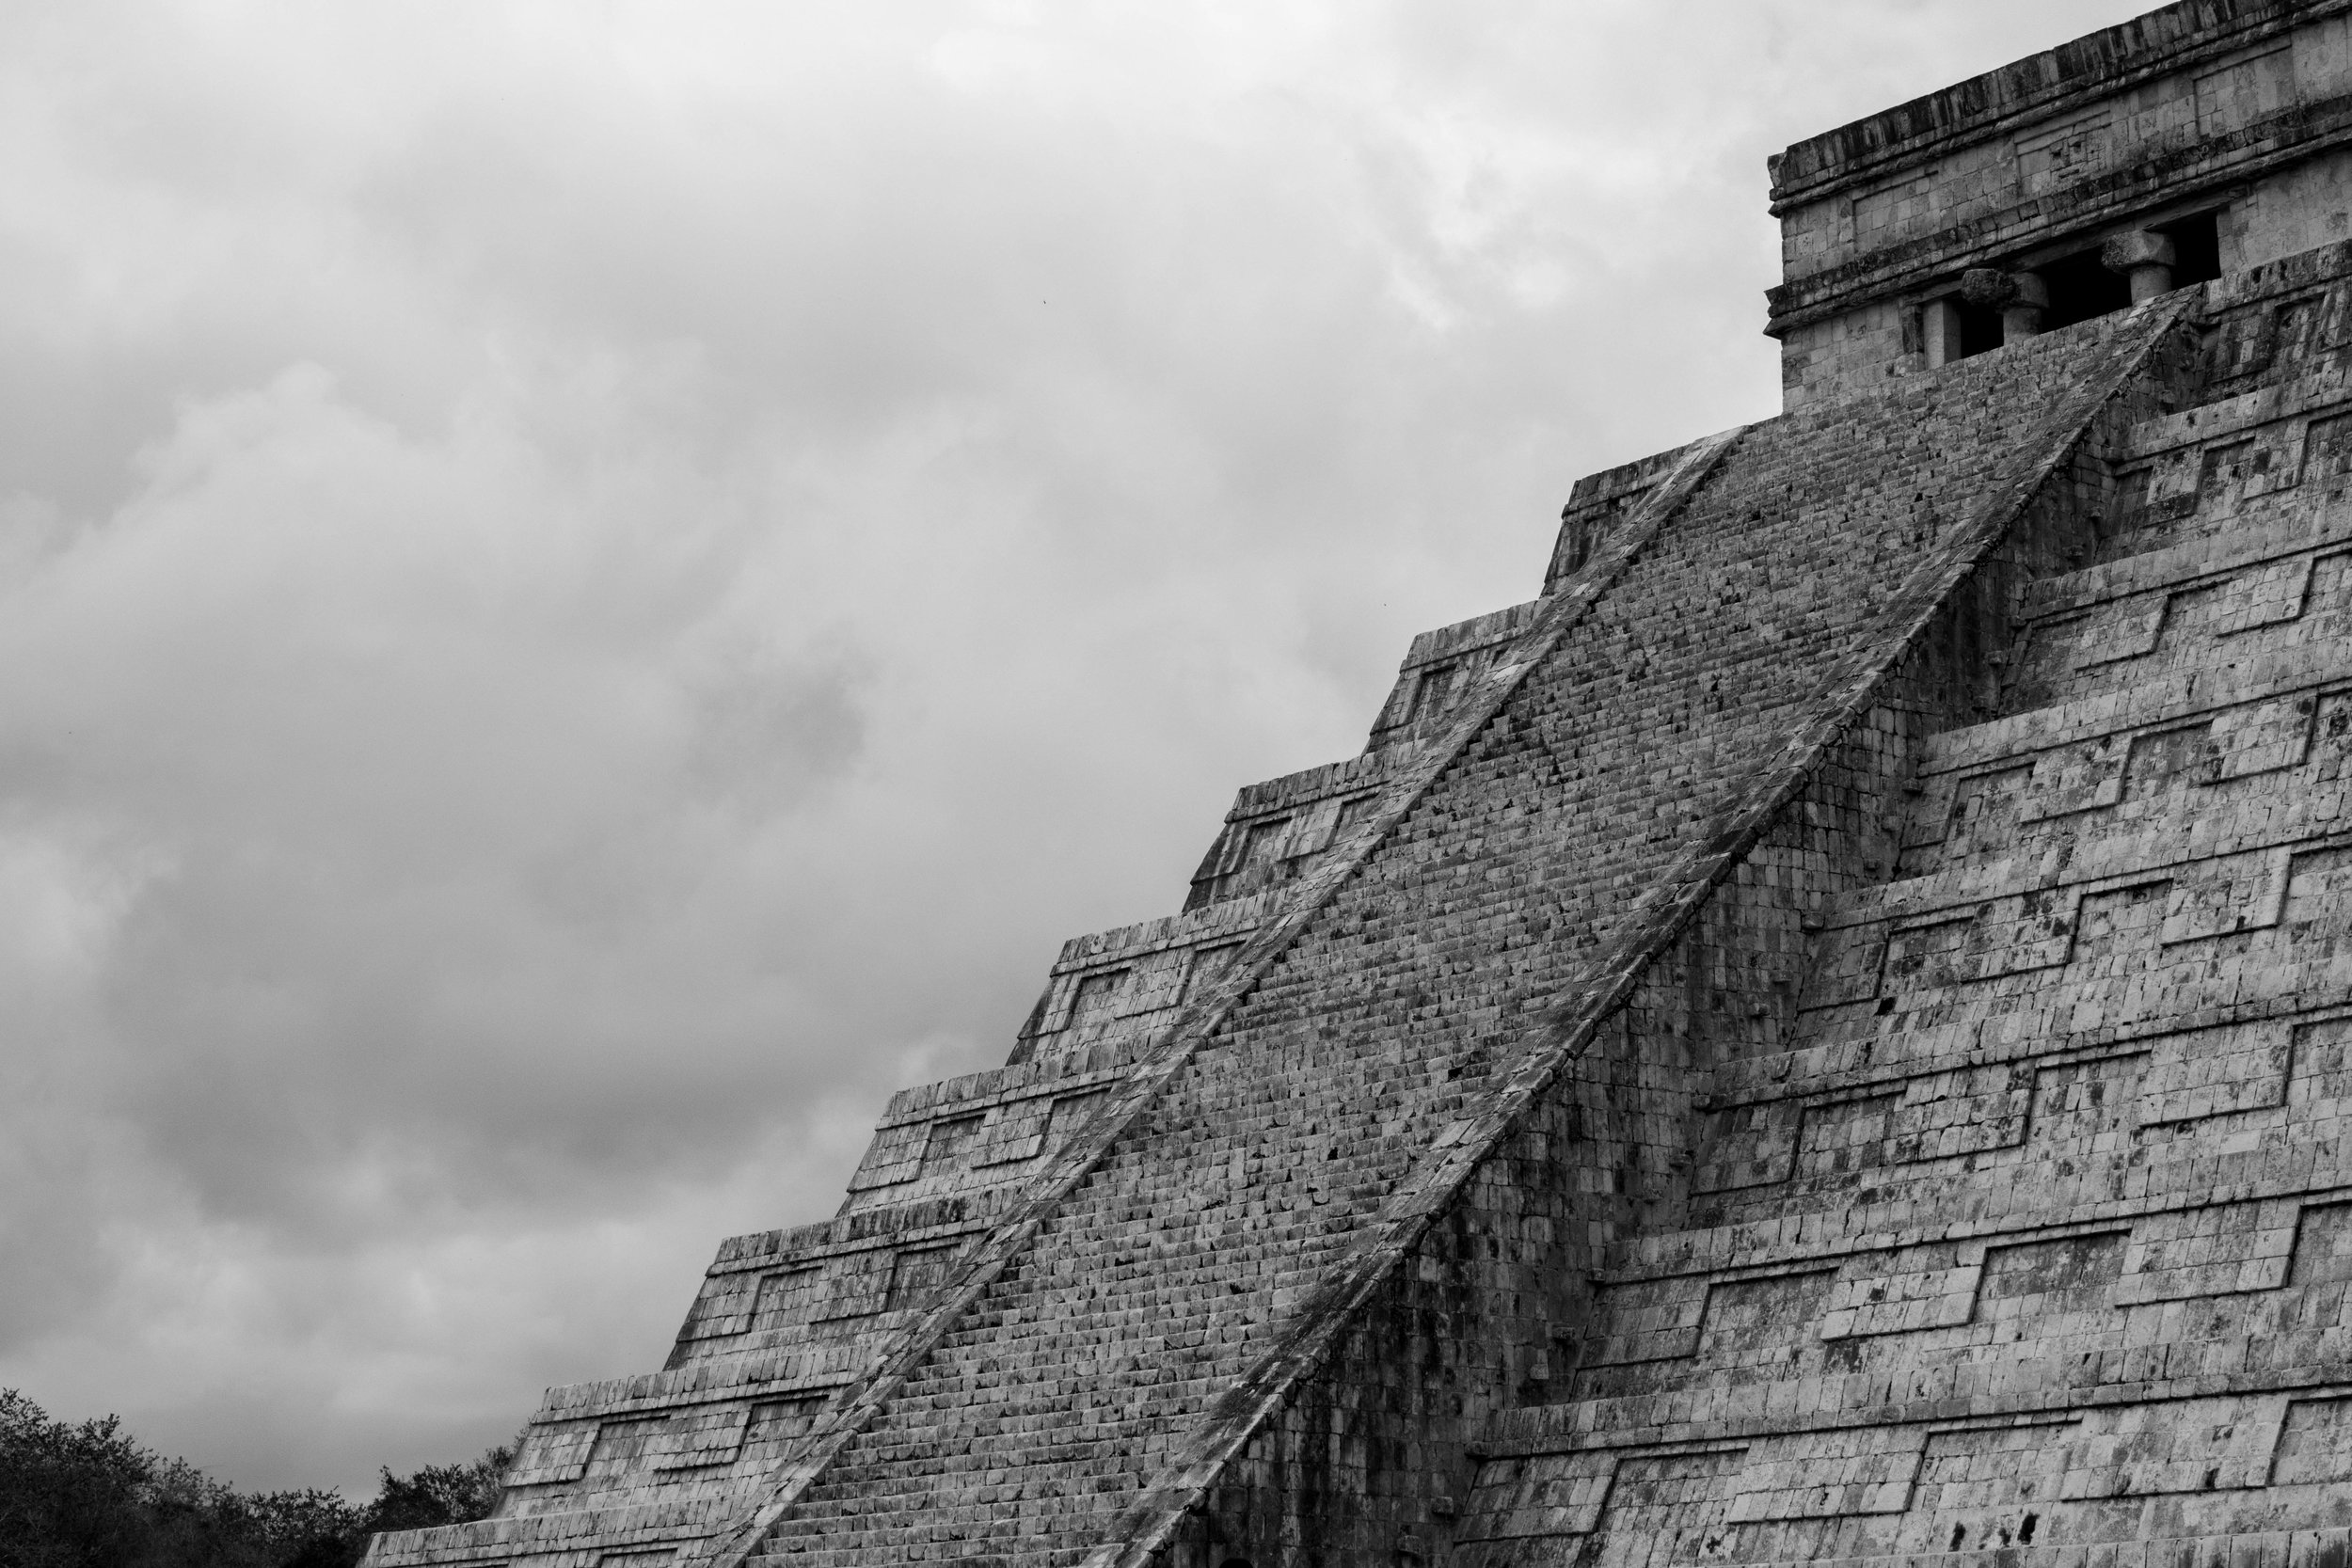 El Castillo in Chichén Itzá in Mexico